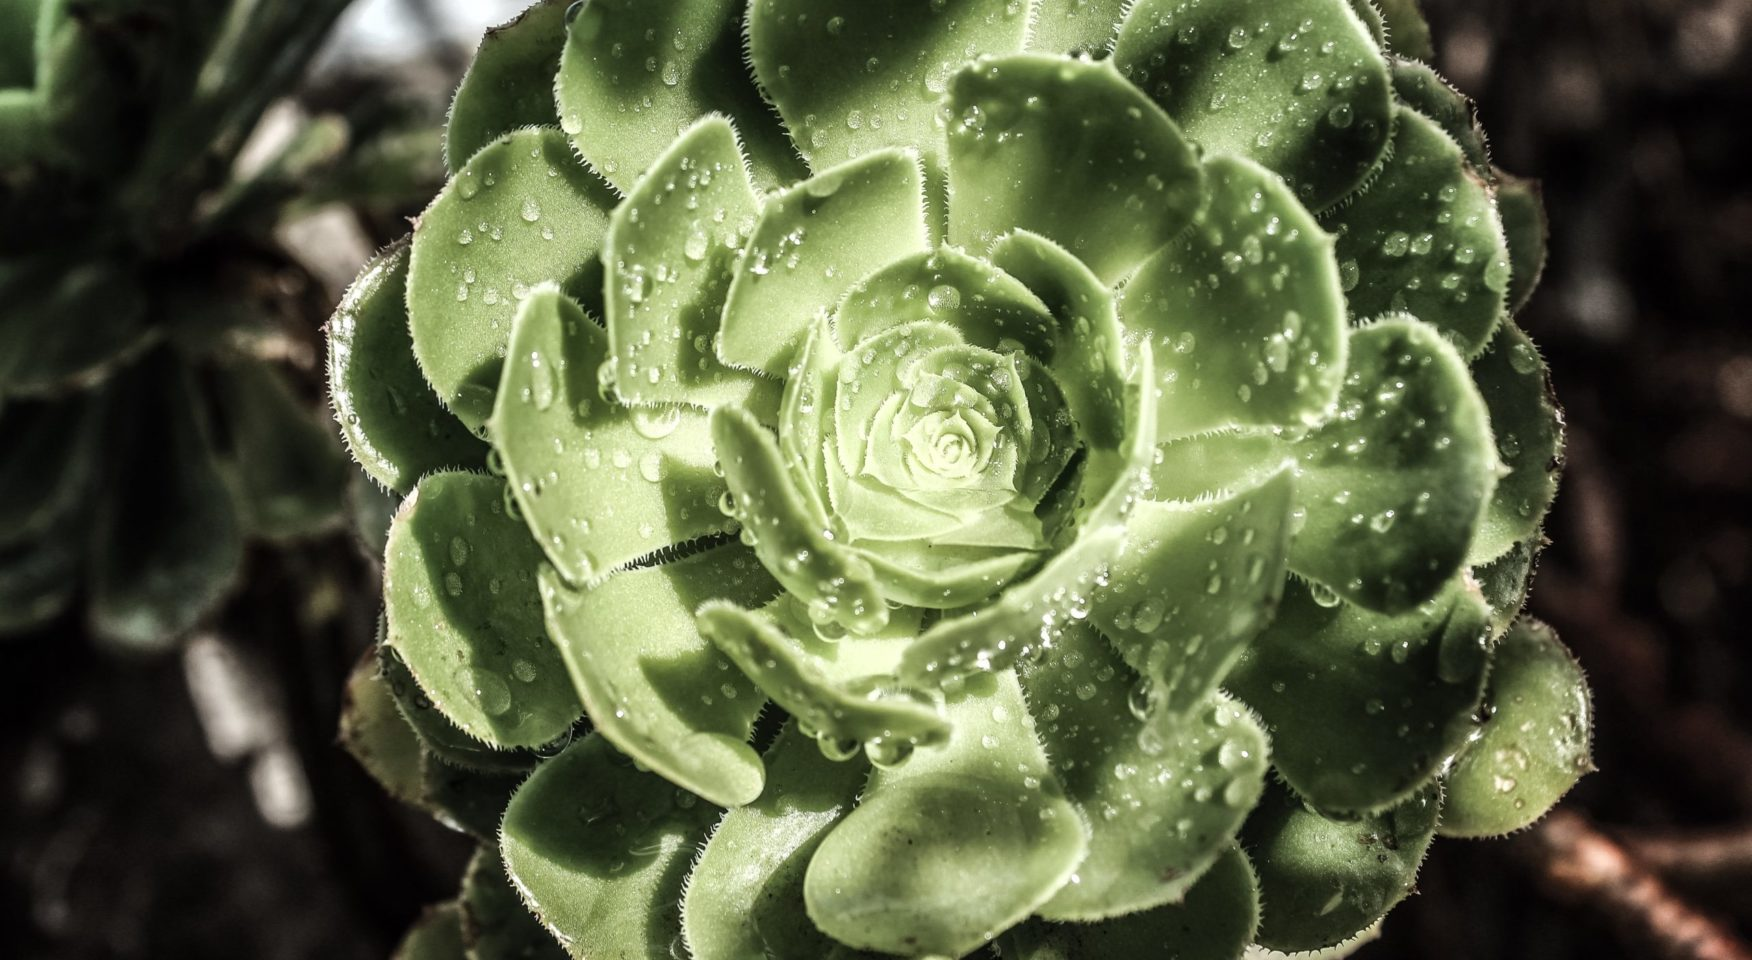 succulent plant covered in dew drops